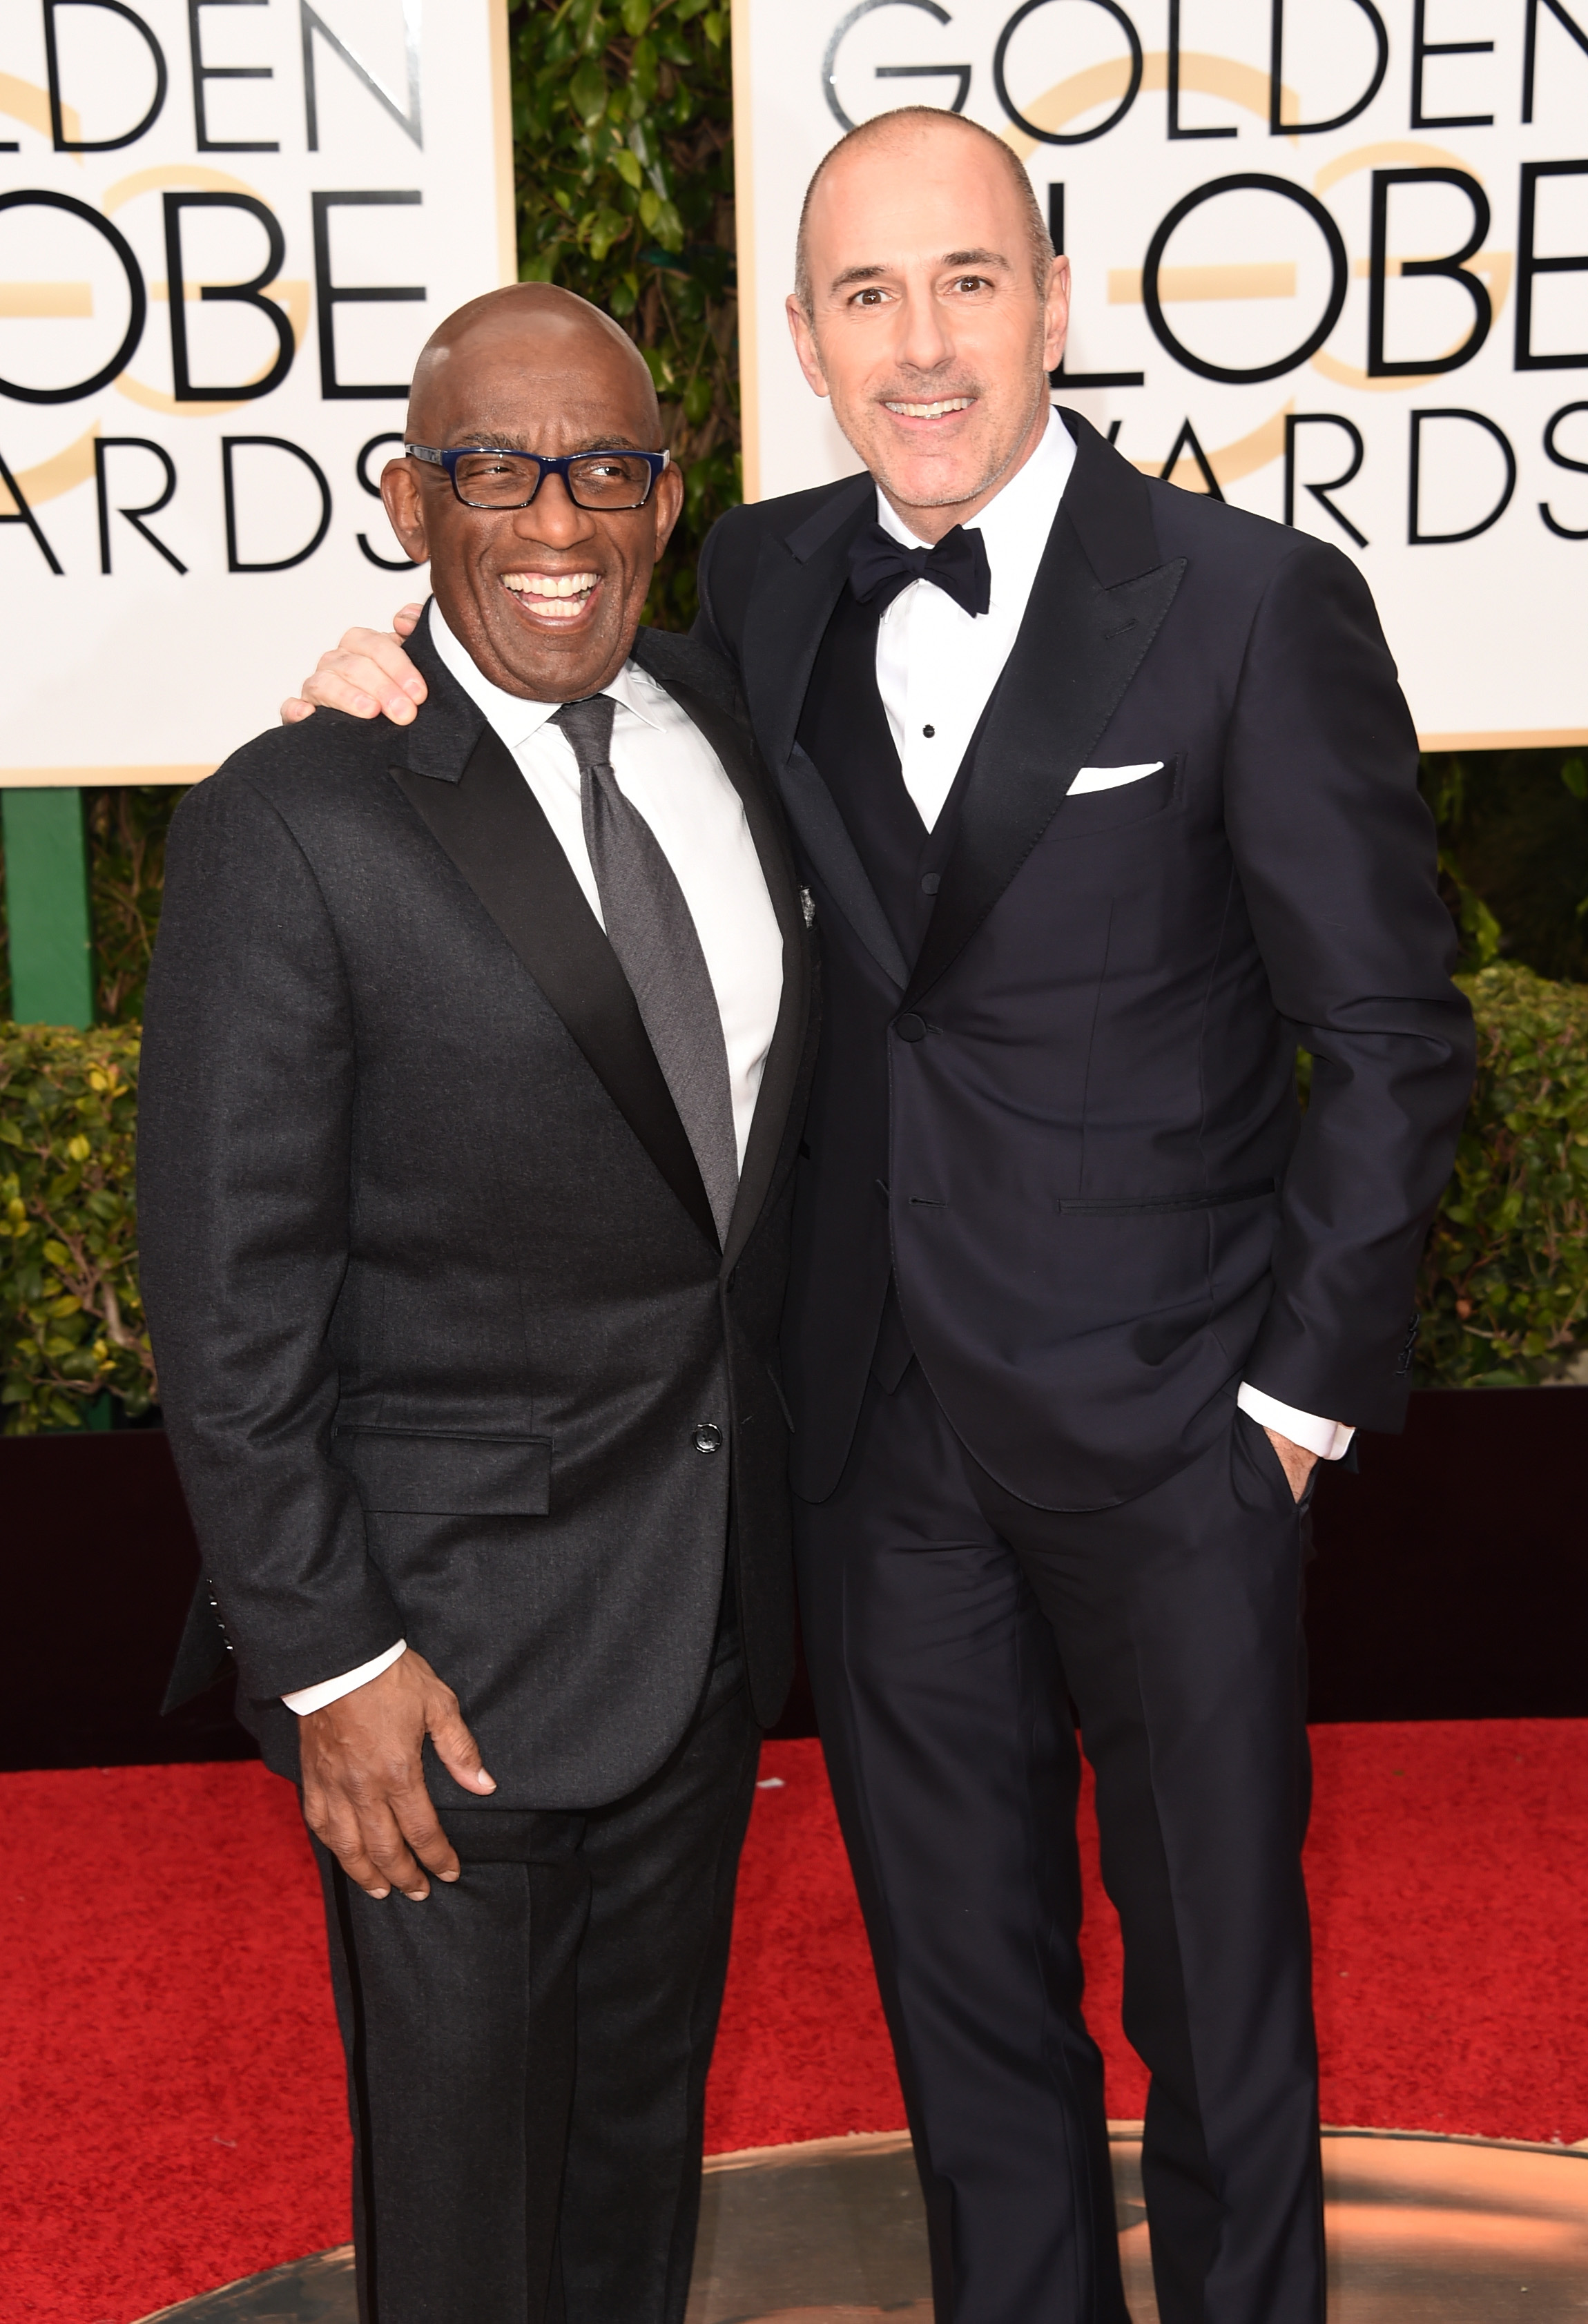 TV personalities Al Roker (L) and Matt Lauer attend the 73rd Annual Golden Globe Awards held at the Beverly Hilton Hotel on January 10, 2016 in Beverly Hills, California. (Source: Getty Images)